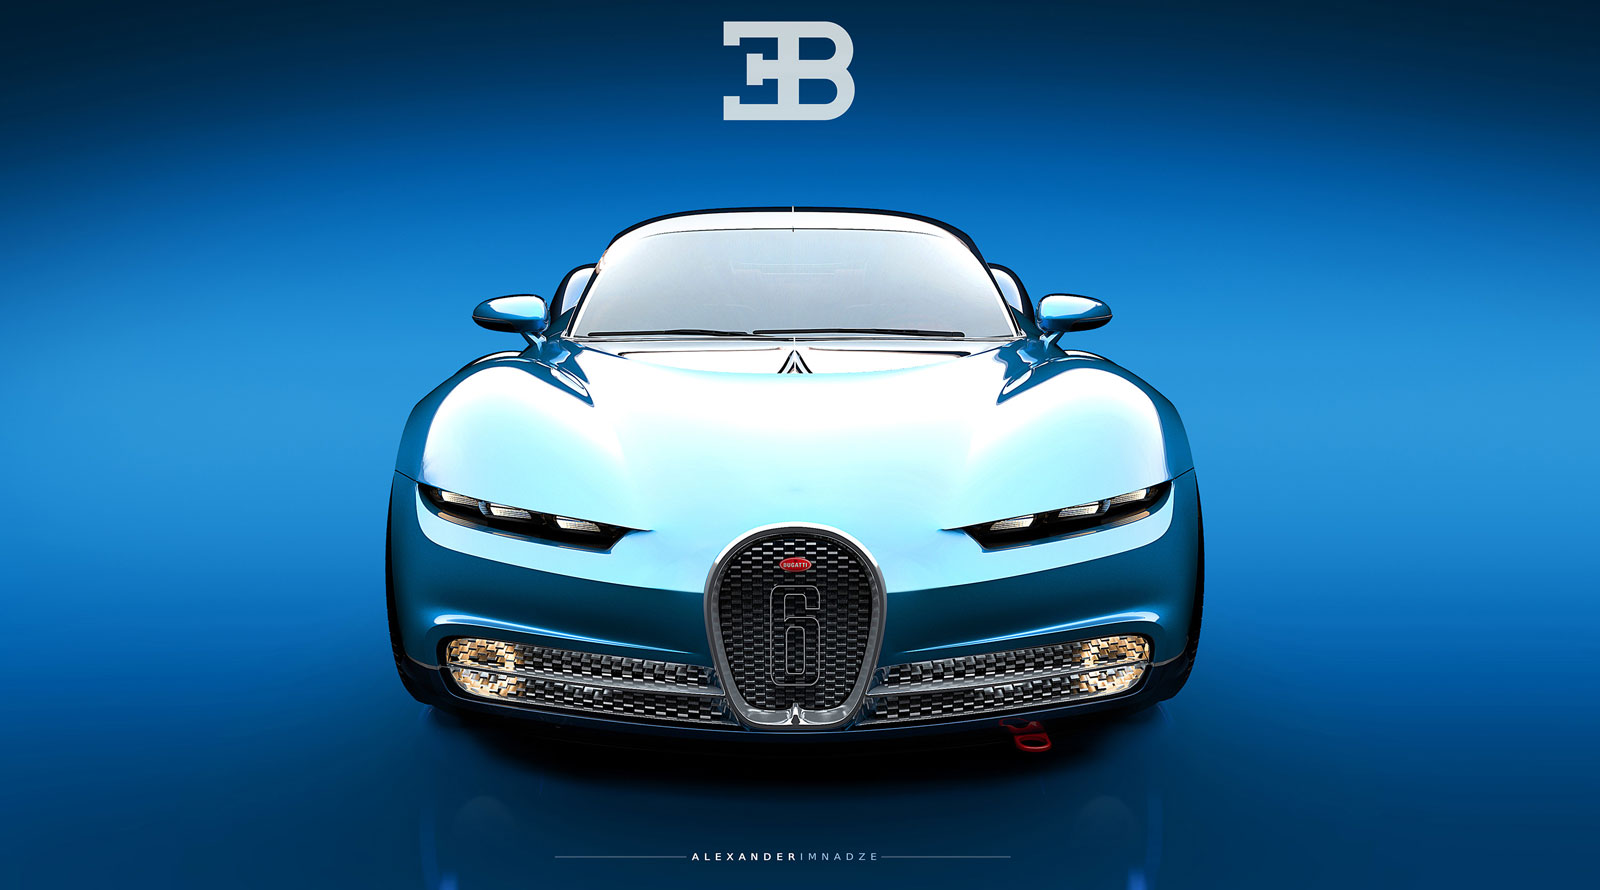 Kids Car Wallpaper Bugatti Vision Gt Concept Reinvented At Sleek Coupe With